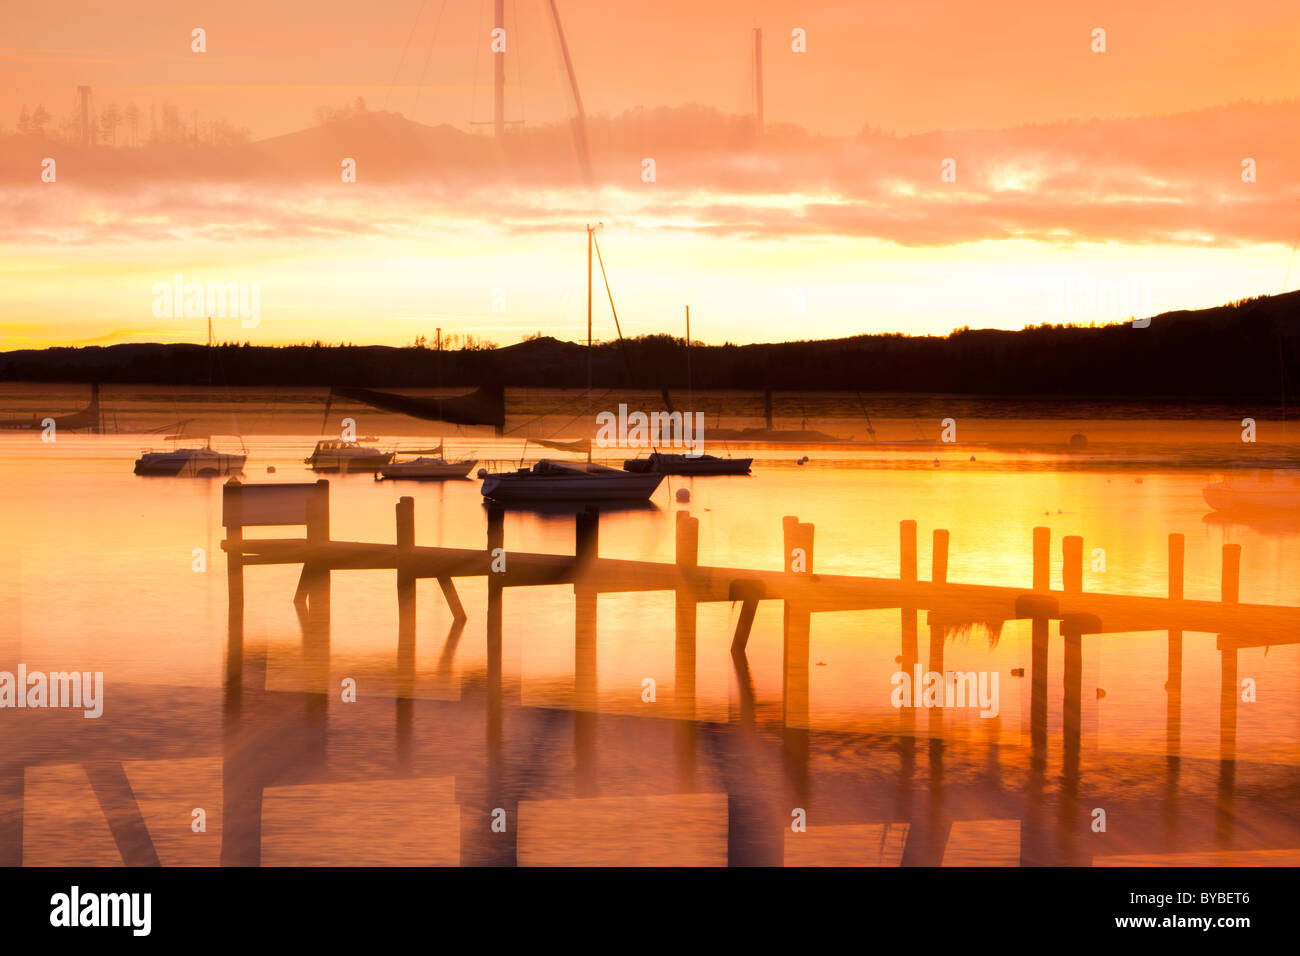 Lake Windermere at sunset with the reflection of a jetty, Lake District, UK. - Stock Image